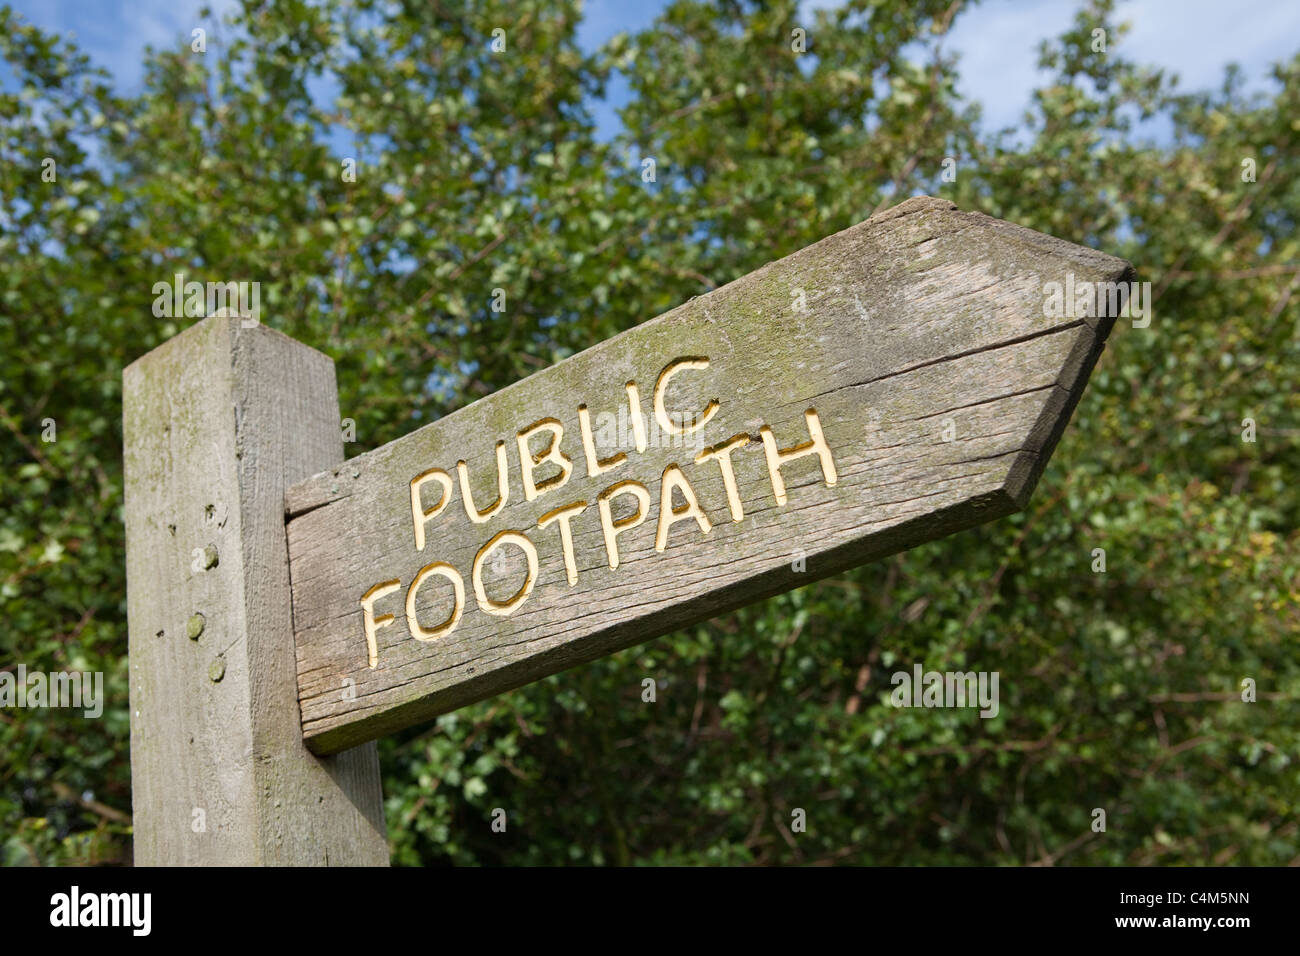 Wooden public footpath sign on post - Stock Image